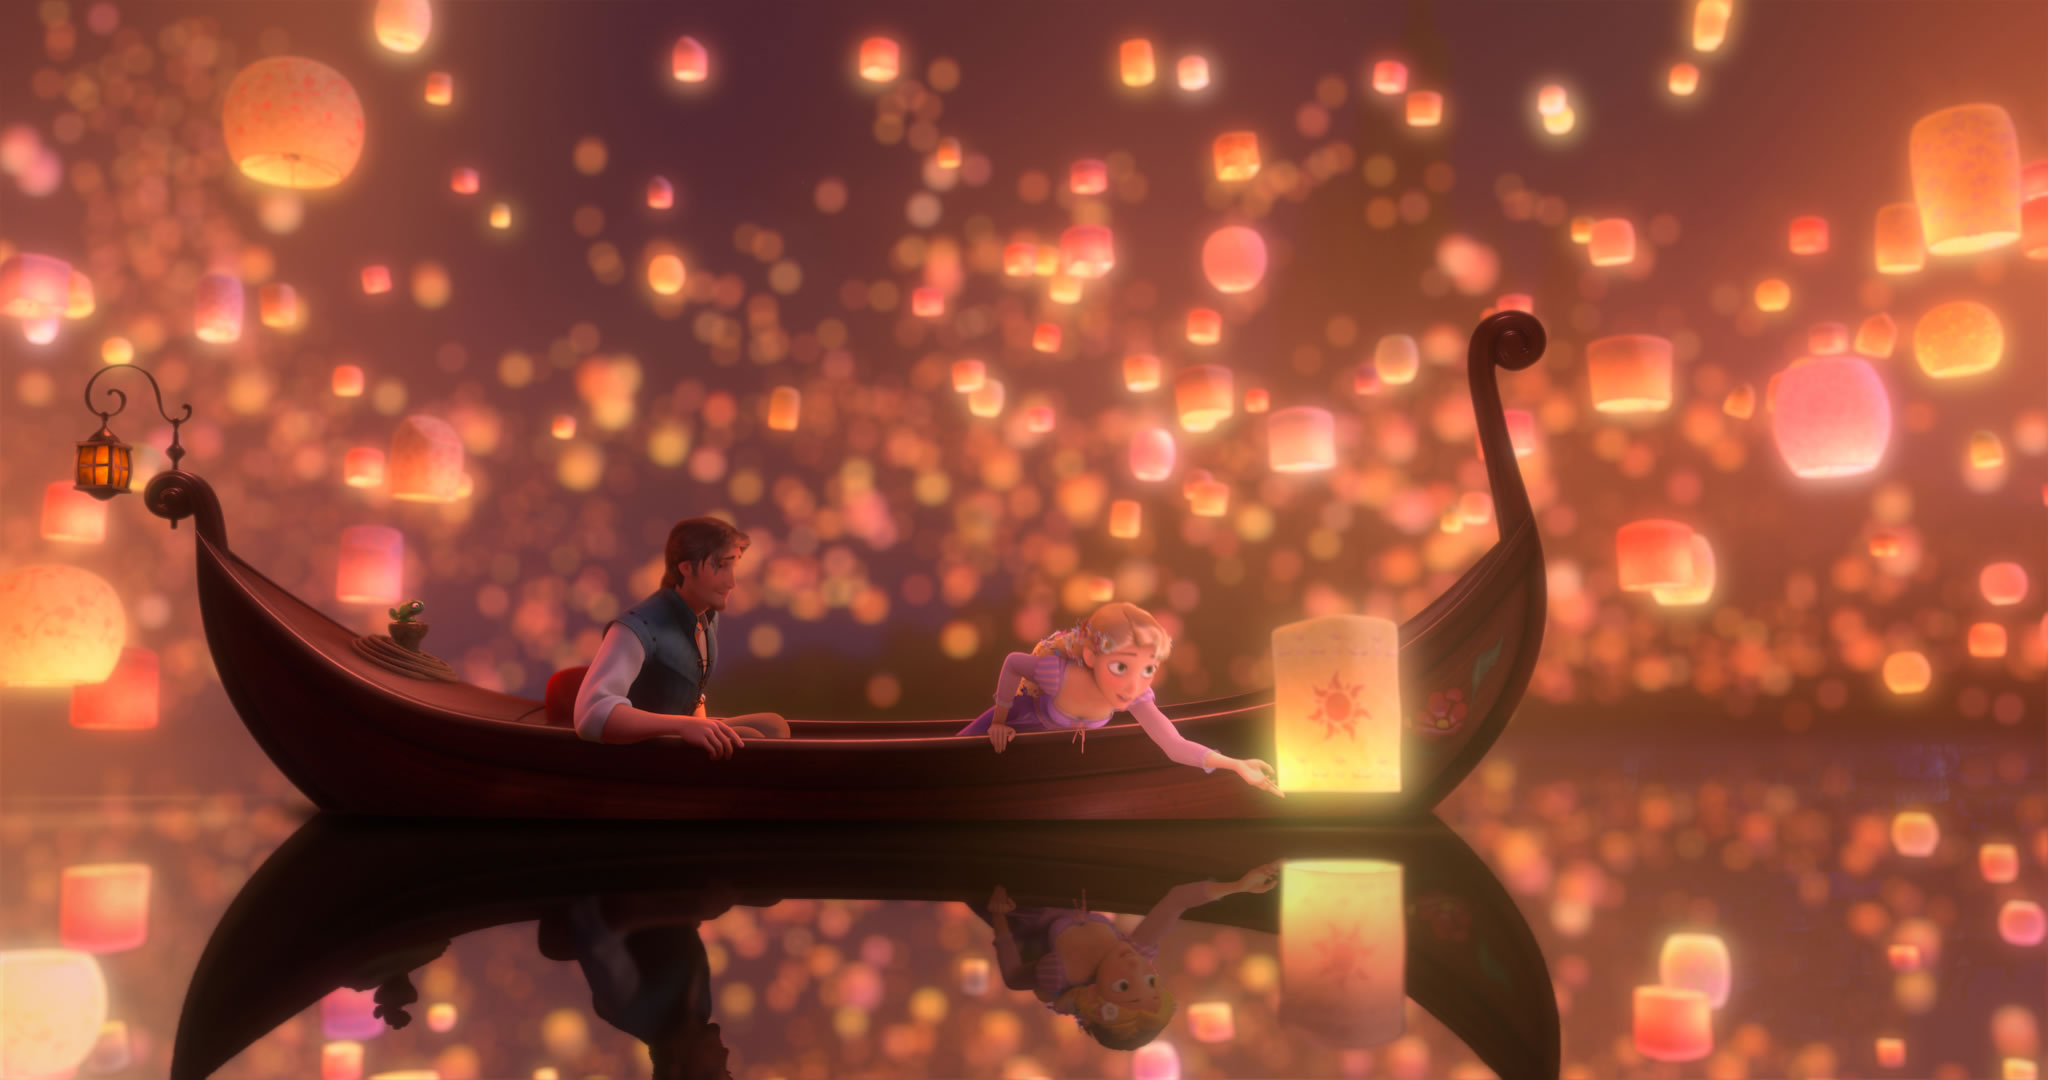 Tangled Wallpapers 1920x1200 Movie Wallpapers 2048x1080